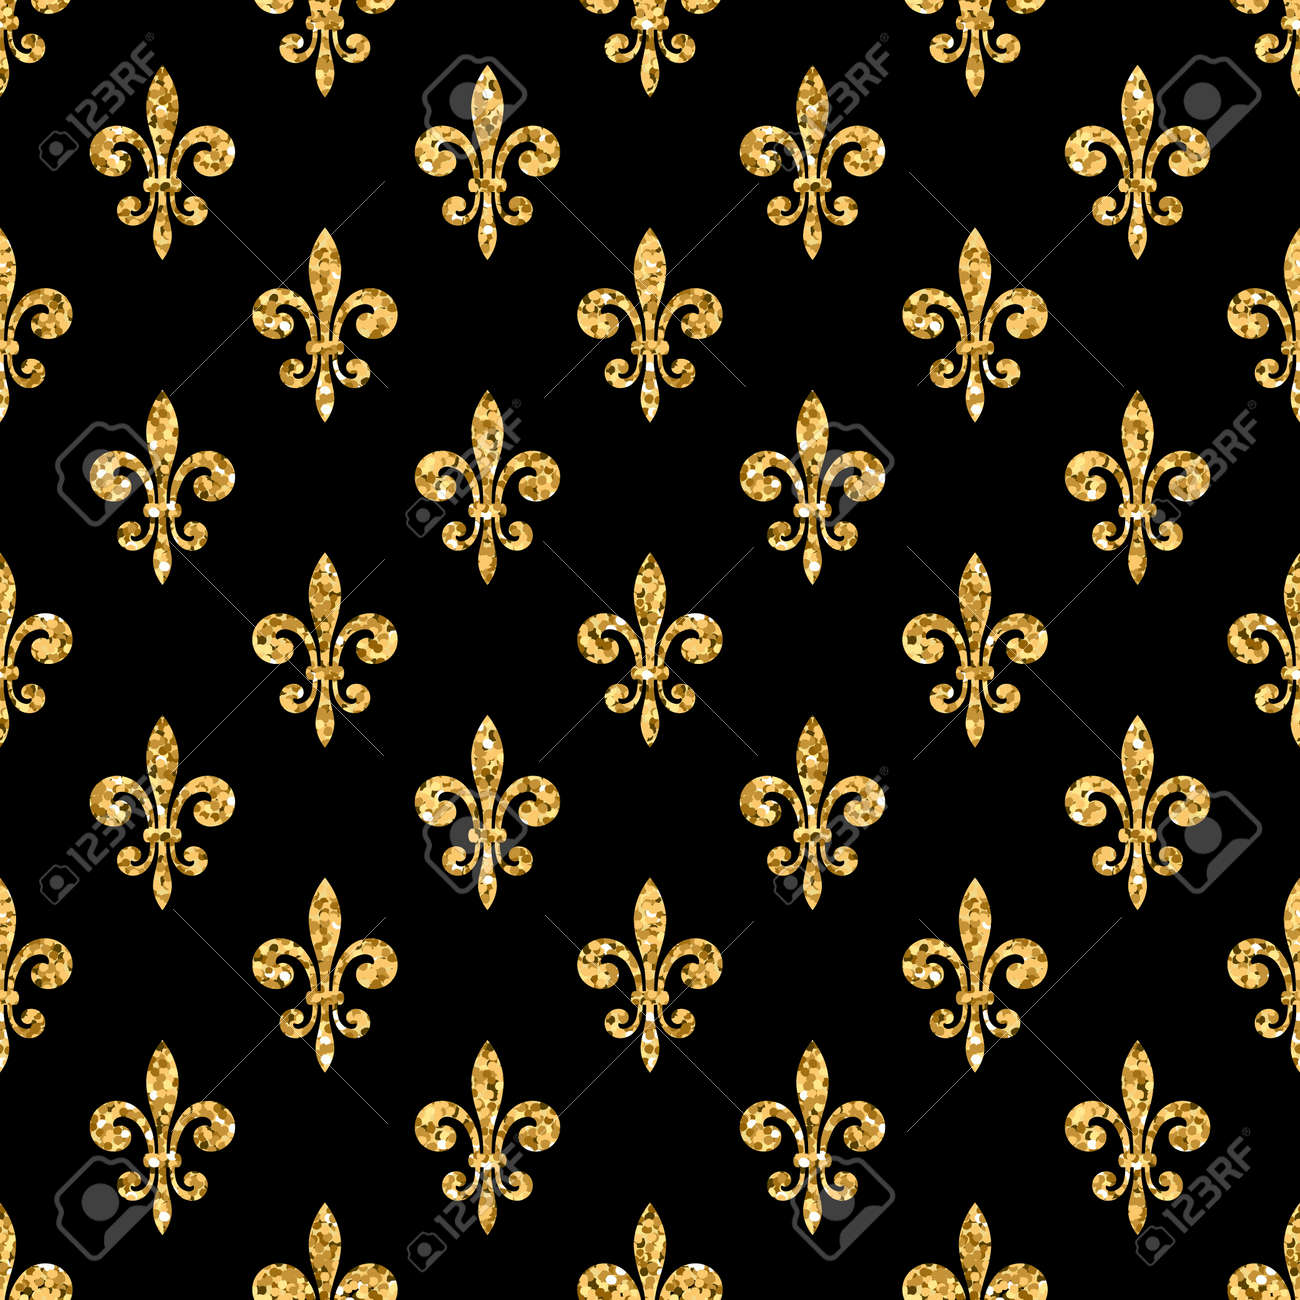 Picture Black Template Floral Texture Glowing Fleur De Fleur De Lis Wallpaper Uk Fleur De Lis Wallpaper Blue G 72141667 Gen Fleur De Lis Seamless Pattern G Glitter houzz-03 Fleur De Lis Wallpaper